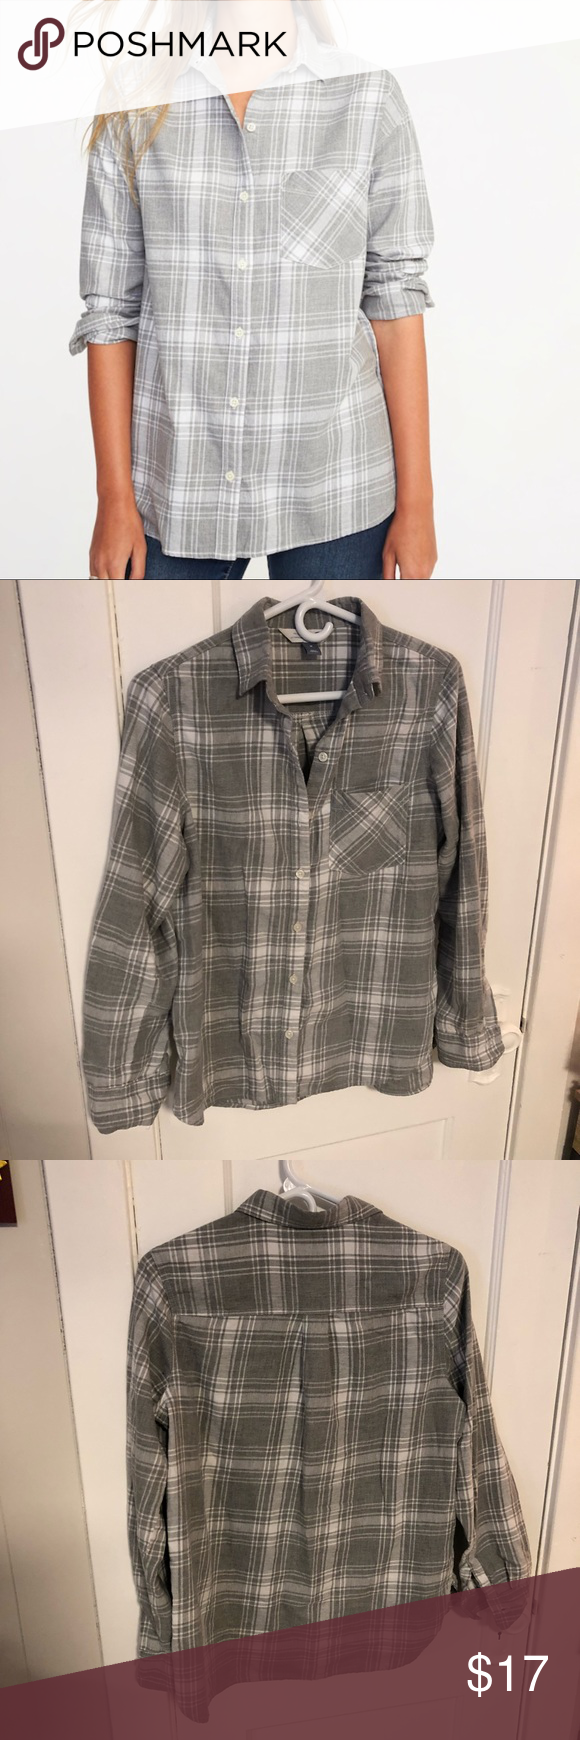 Button up flannel shirts  Gray flannel shirt Comfy grey flannel shirt  wear buttoned up or